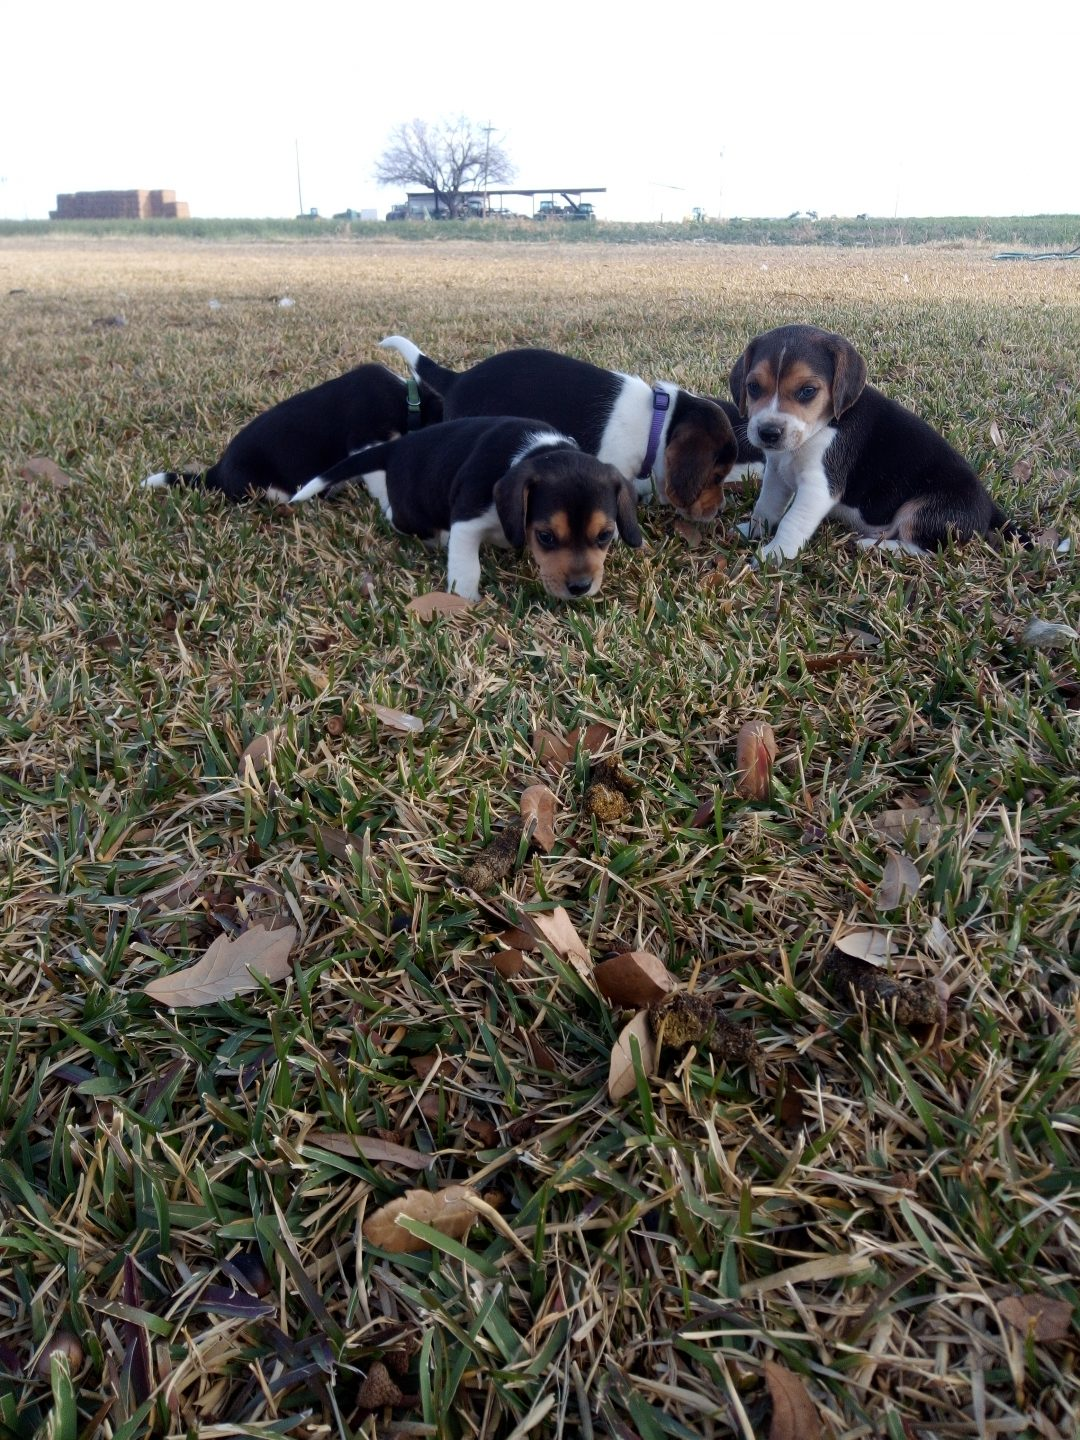 Beau - AKC Beagle pupper for sale near La Pryor, Texas